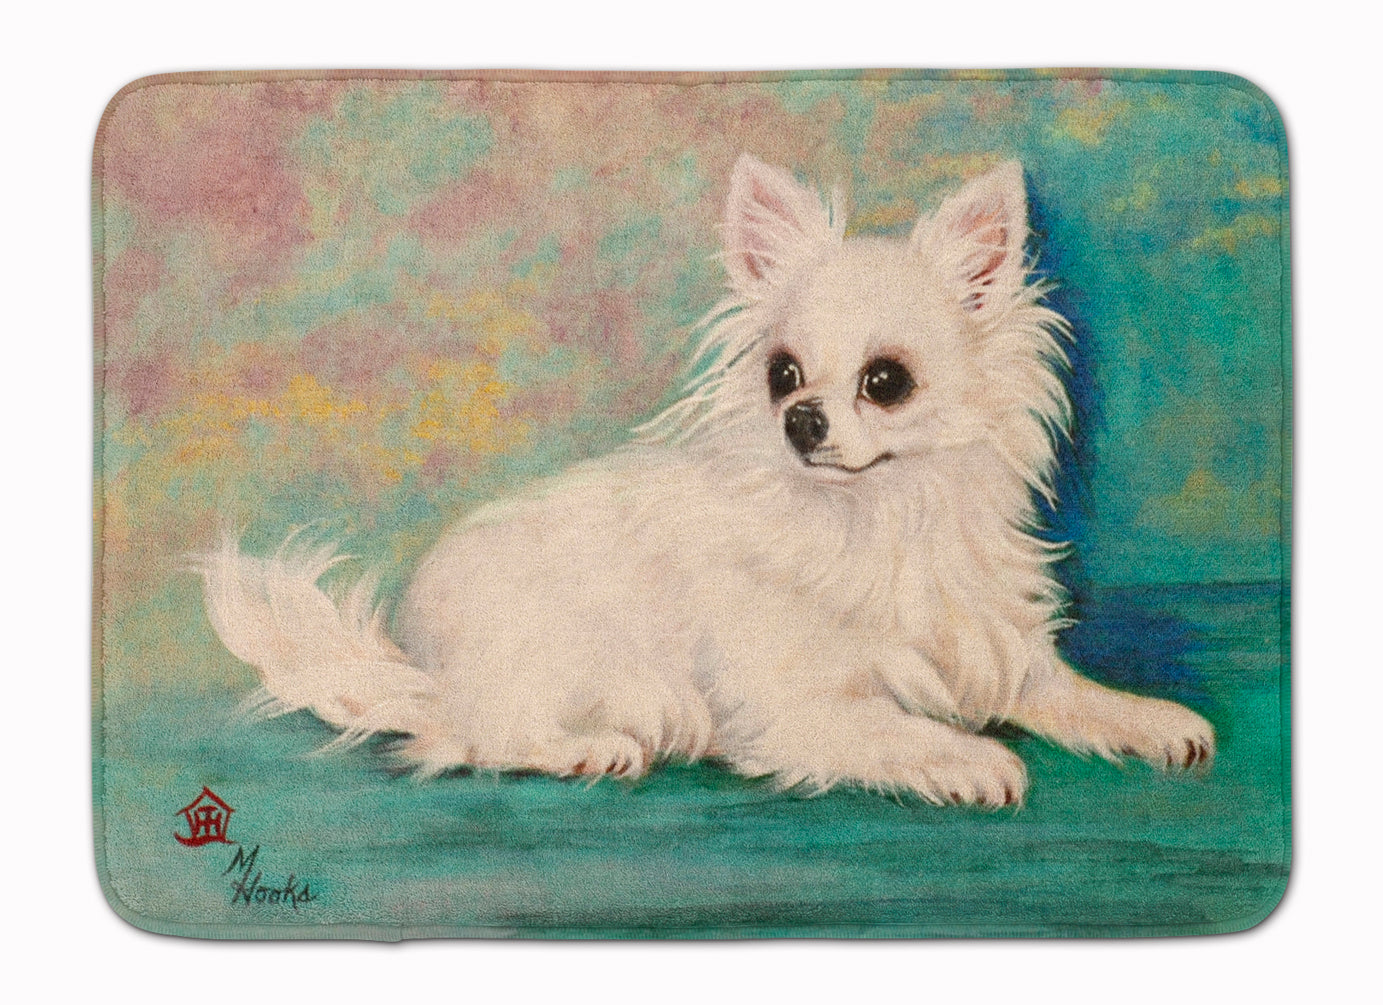 Chihuahua Queen Mother Machine Washable Memory Foam Mat MH1057RUG by Caroline's Treasures